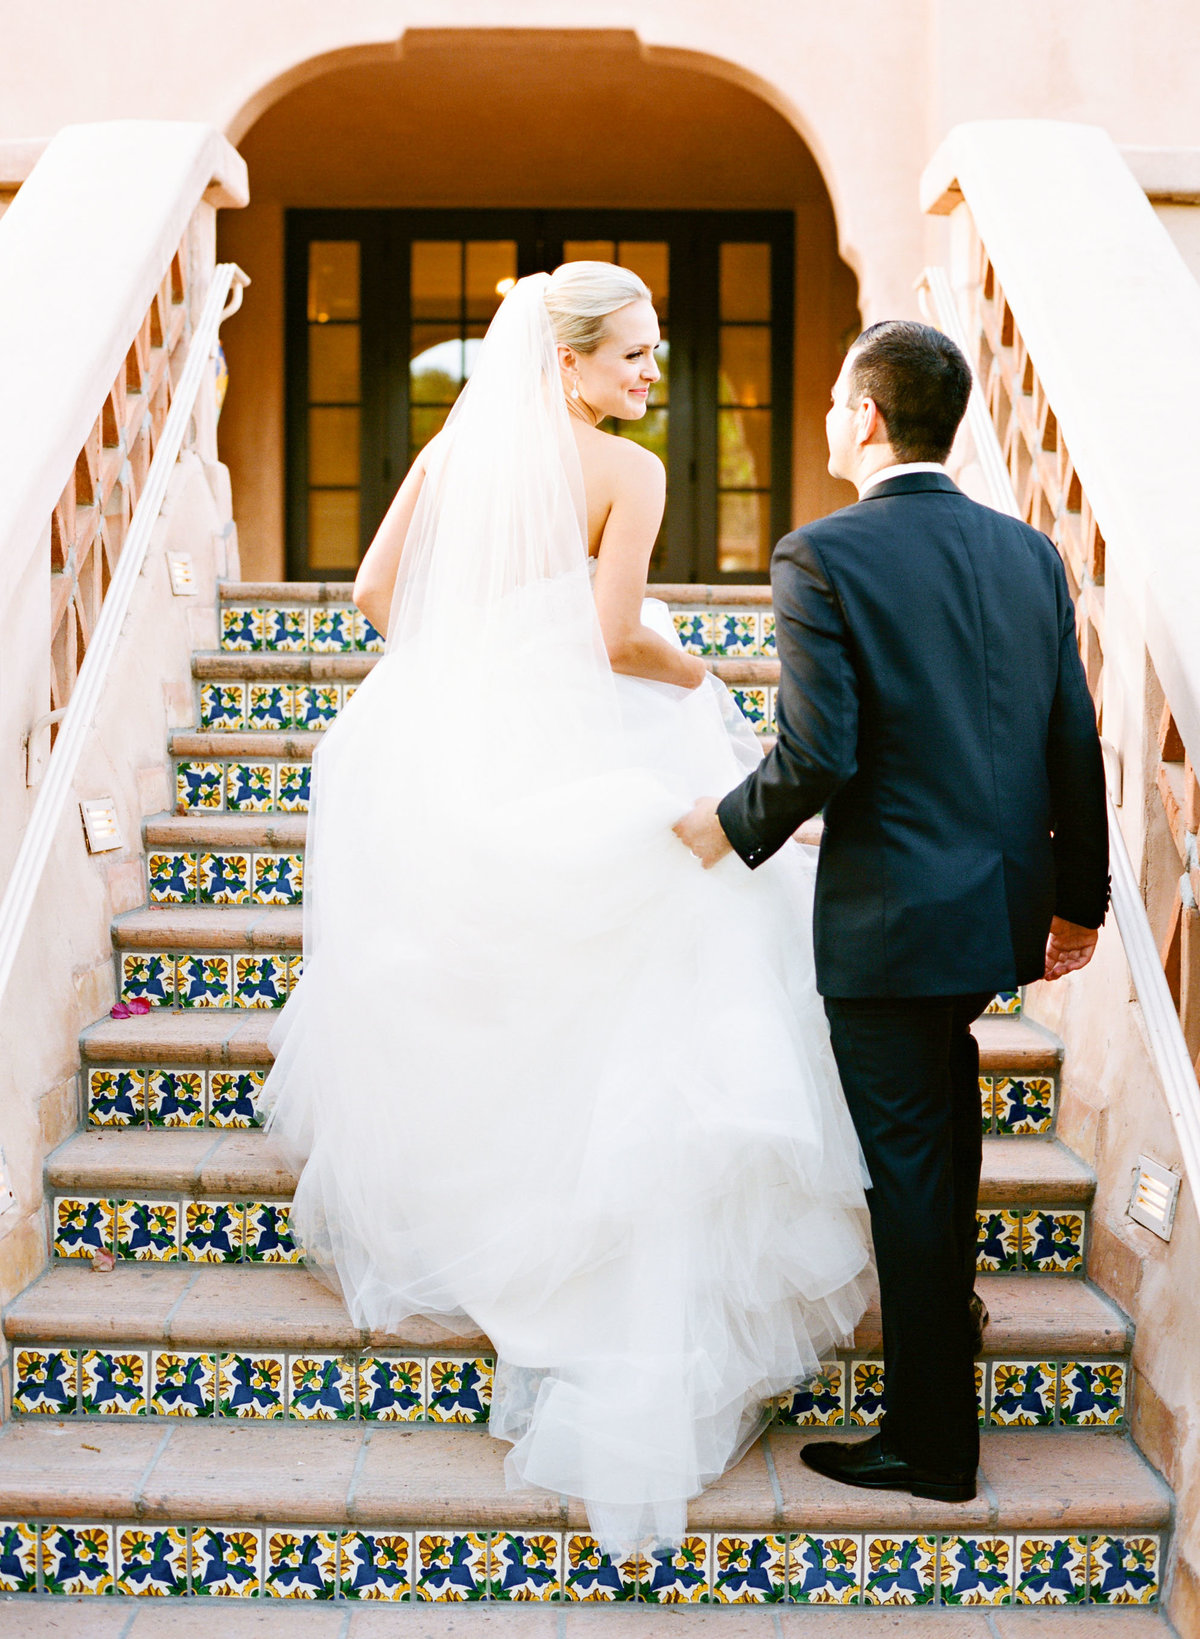 stairs_bride_groom